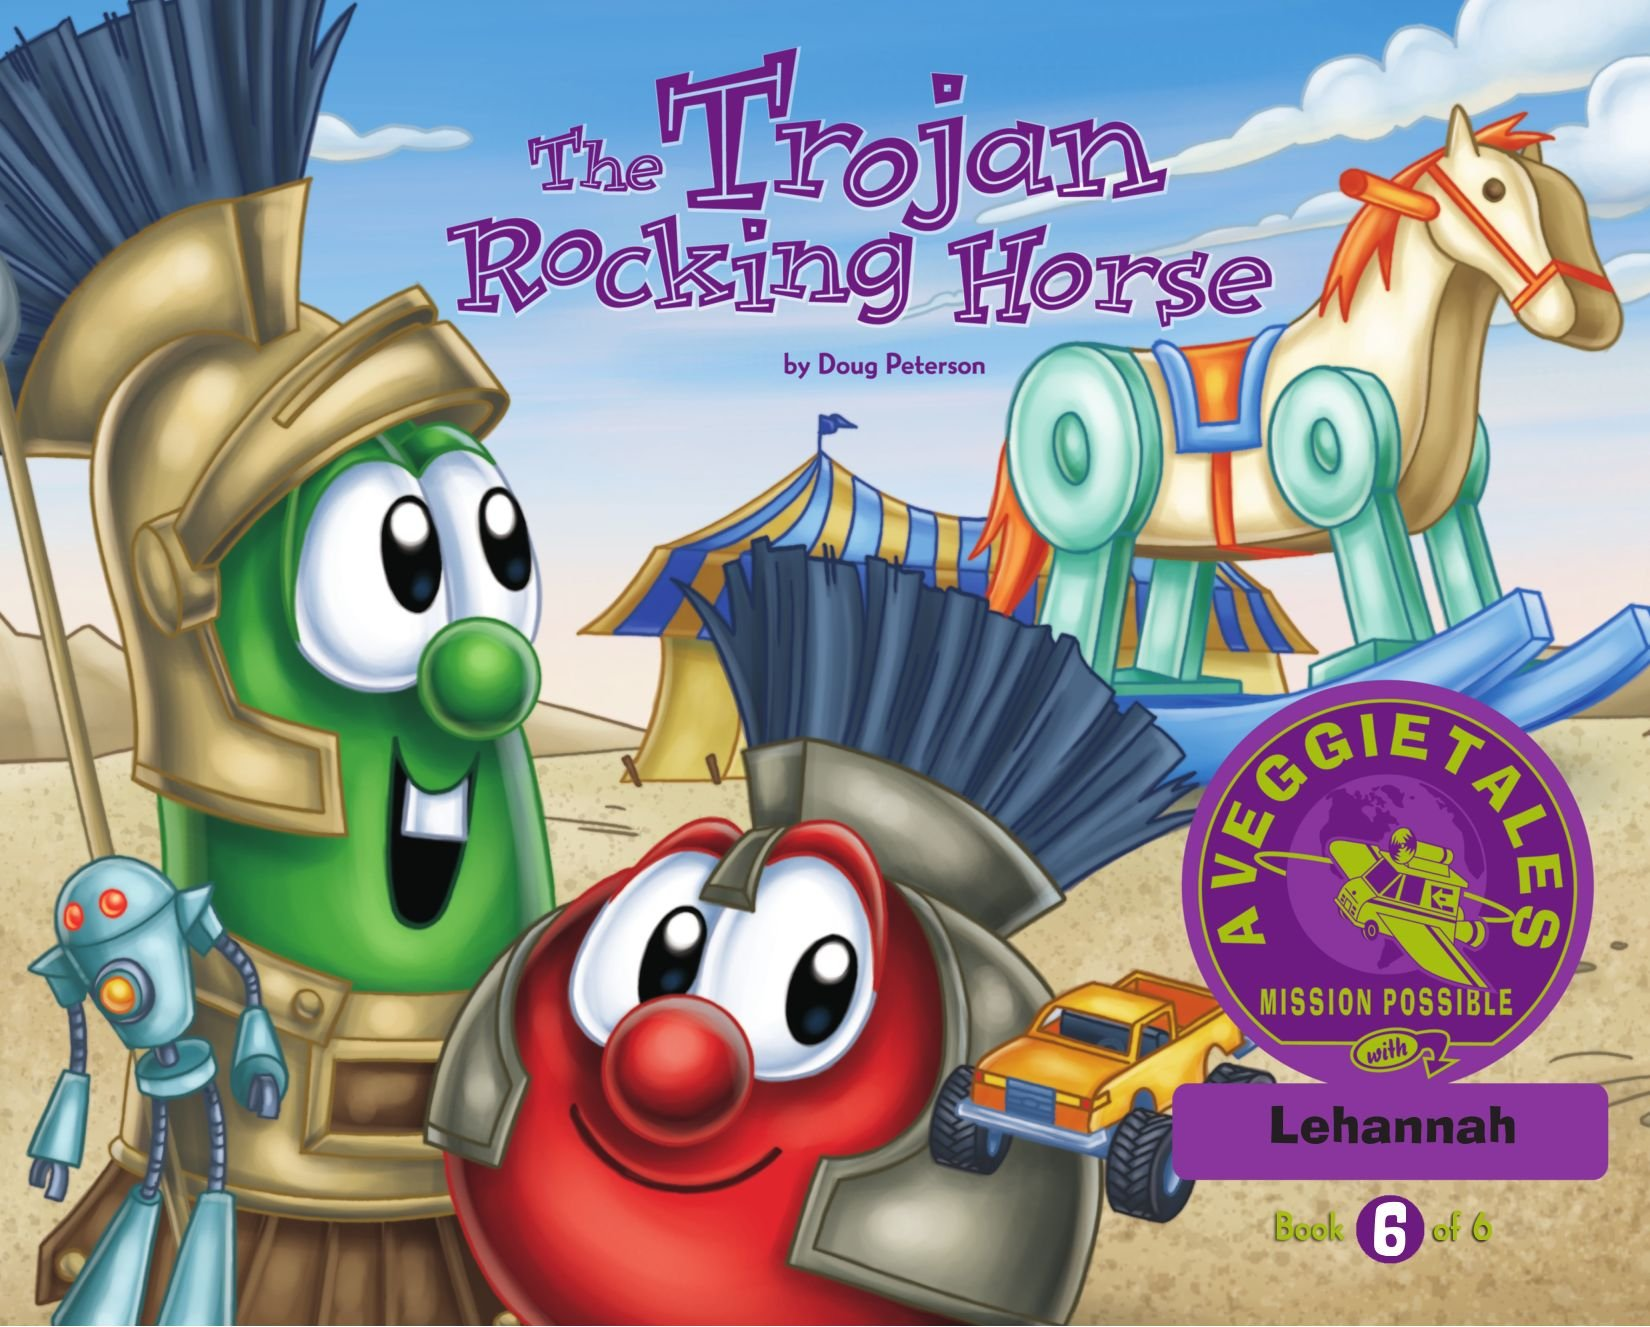 The Trojan Rocking Horse - VeggieTales Mission Possible Adventure Series #6: Personalized for Lehannah (Girl) pdf